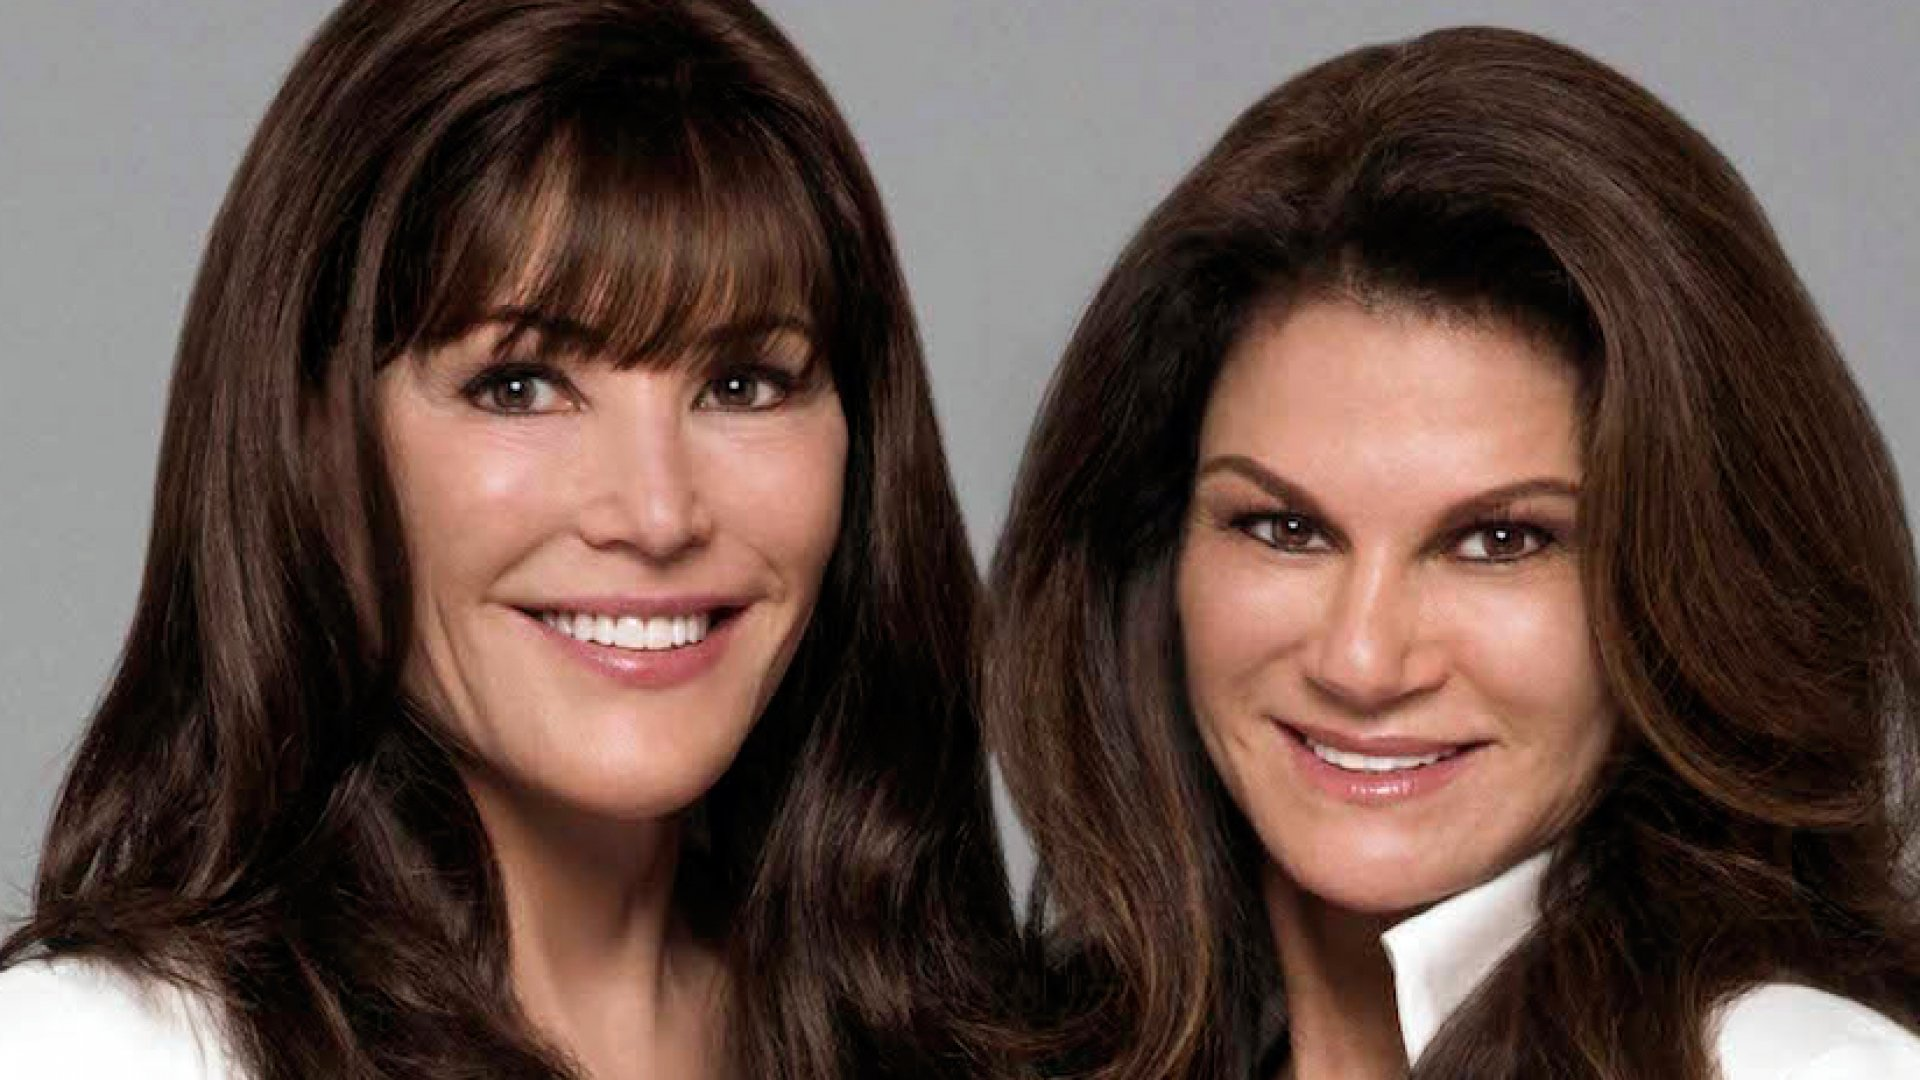 Katie Rodan (left) and Kathy Fields (right)